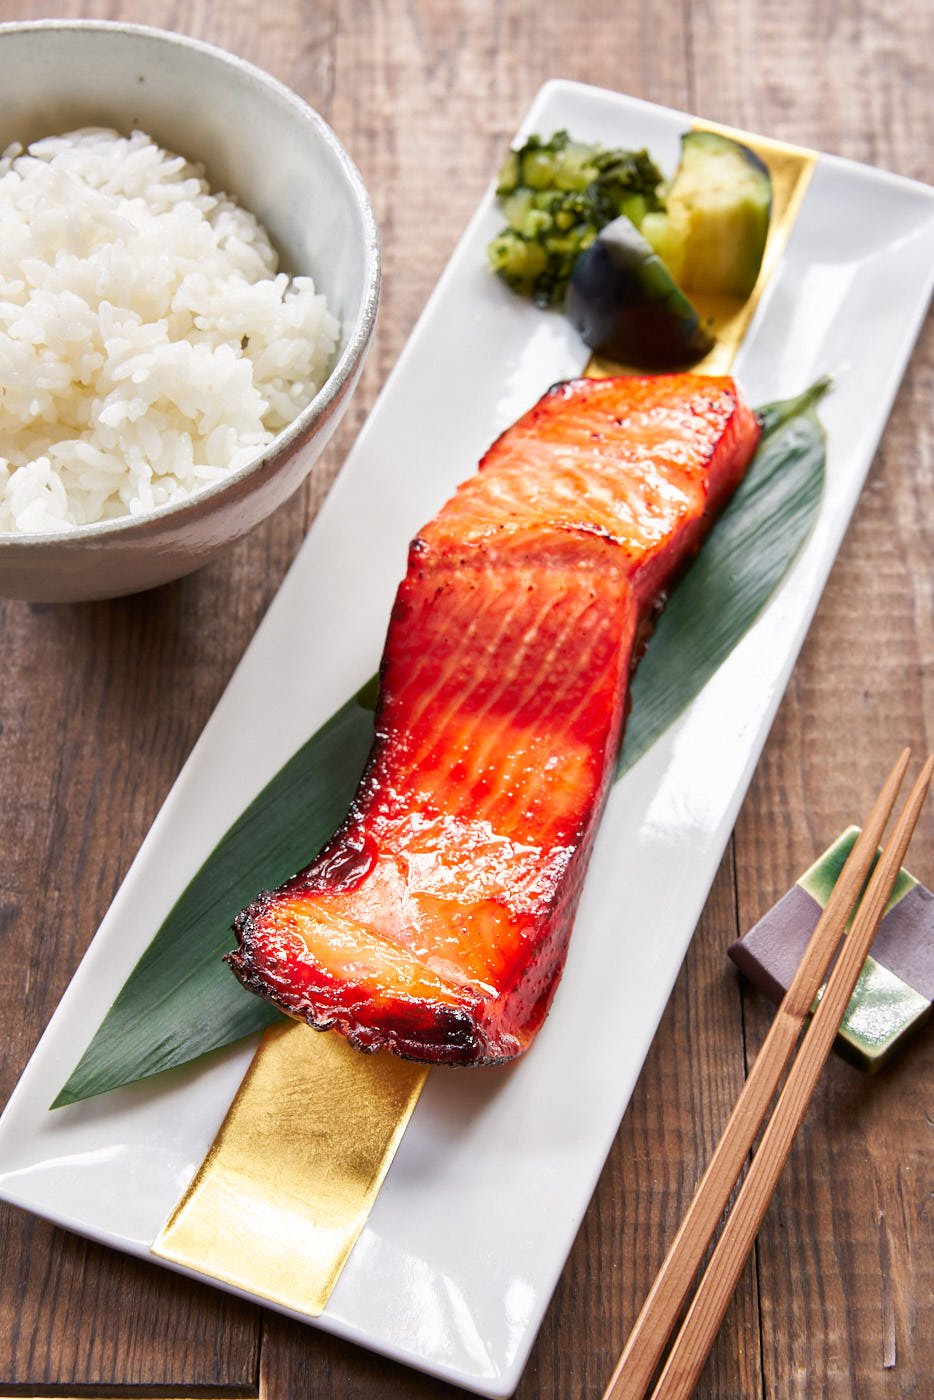 Cured in a sweet and savory miso marinade with just 3 basic ingredients, this easy Miso Salmon recipe is ludicrously good.